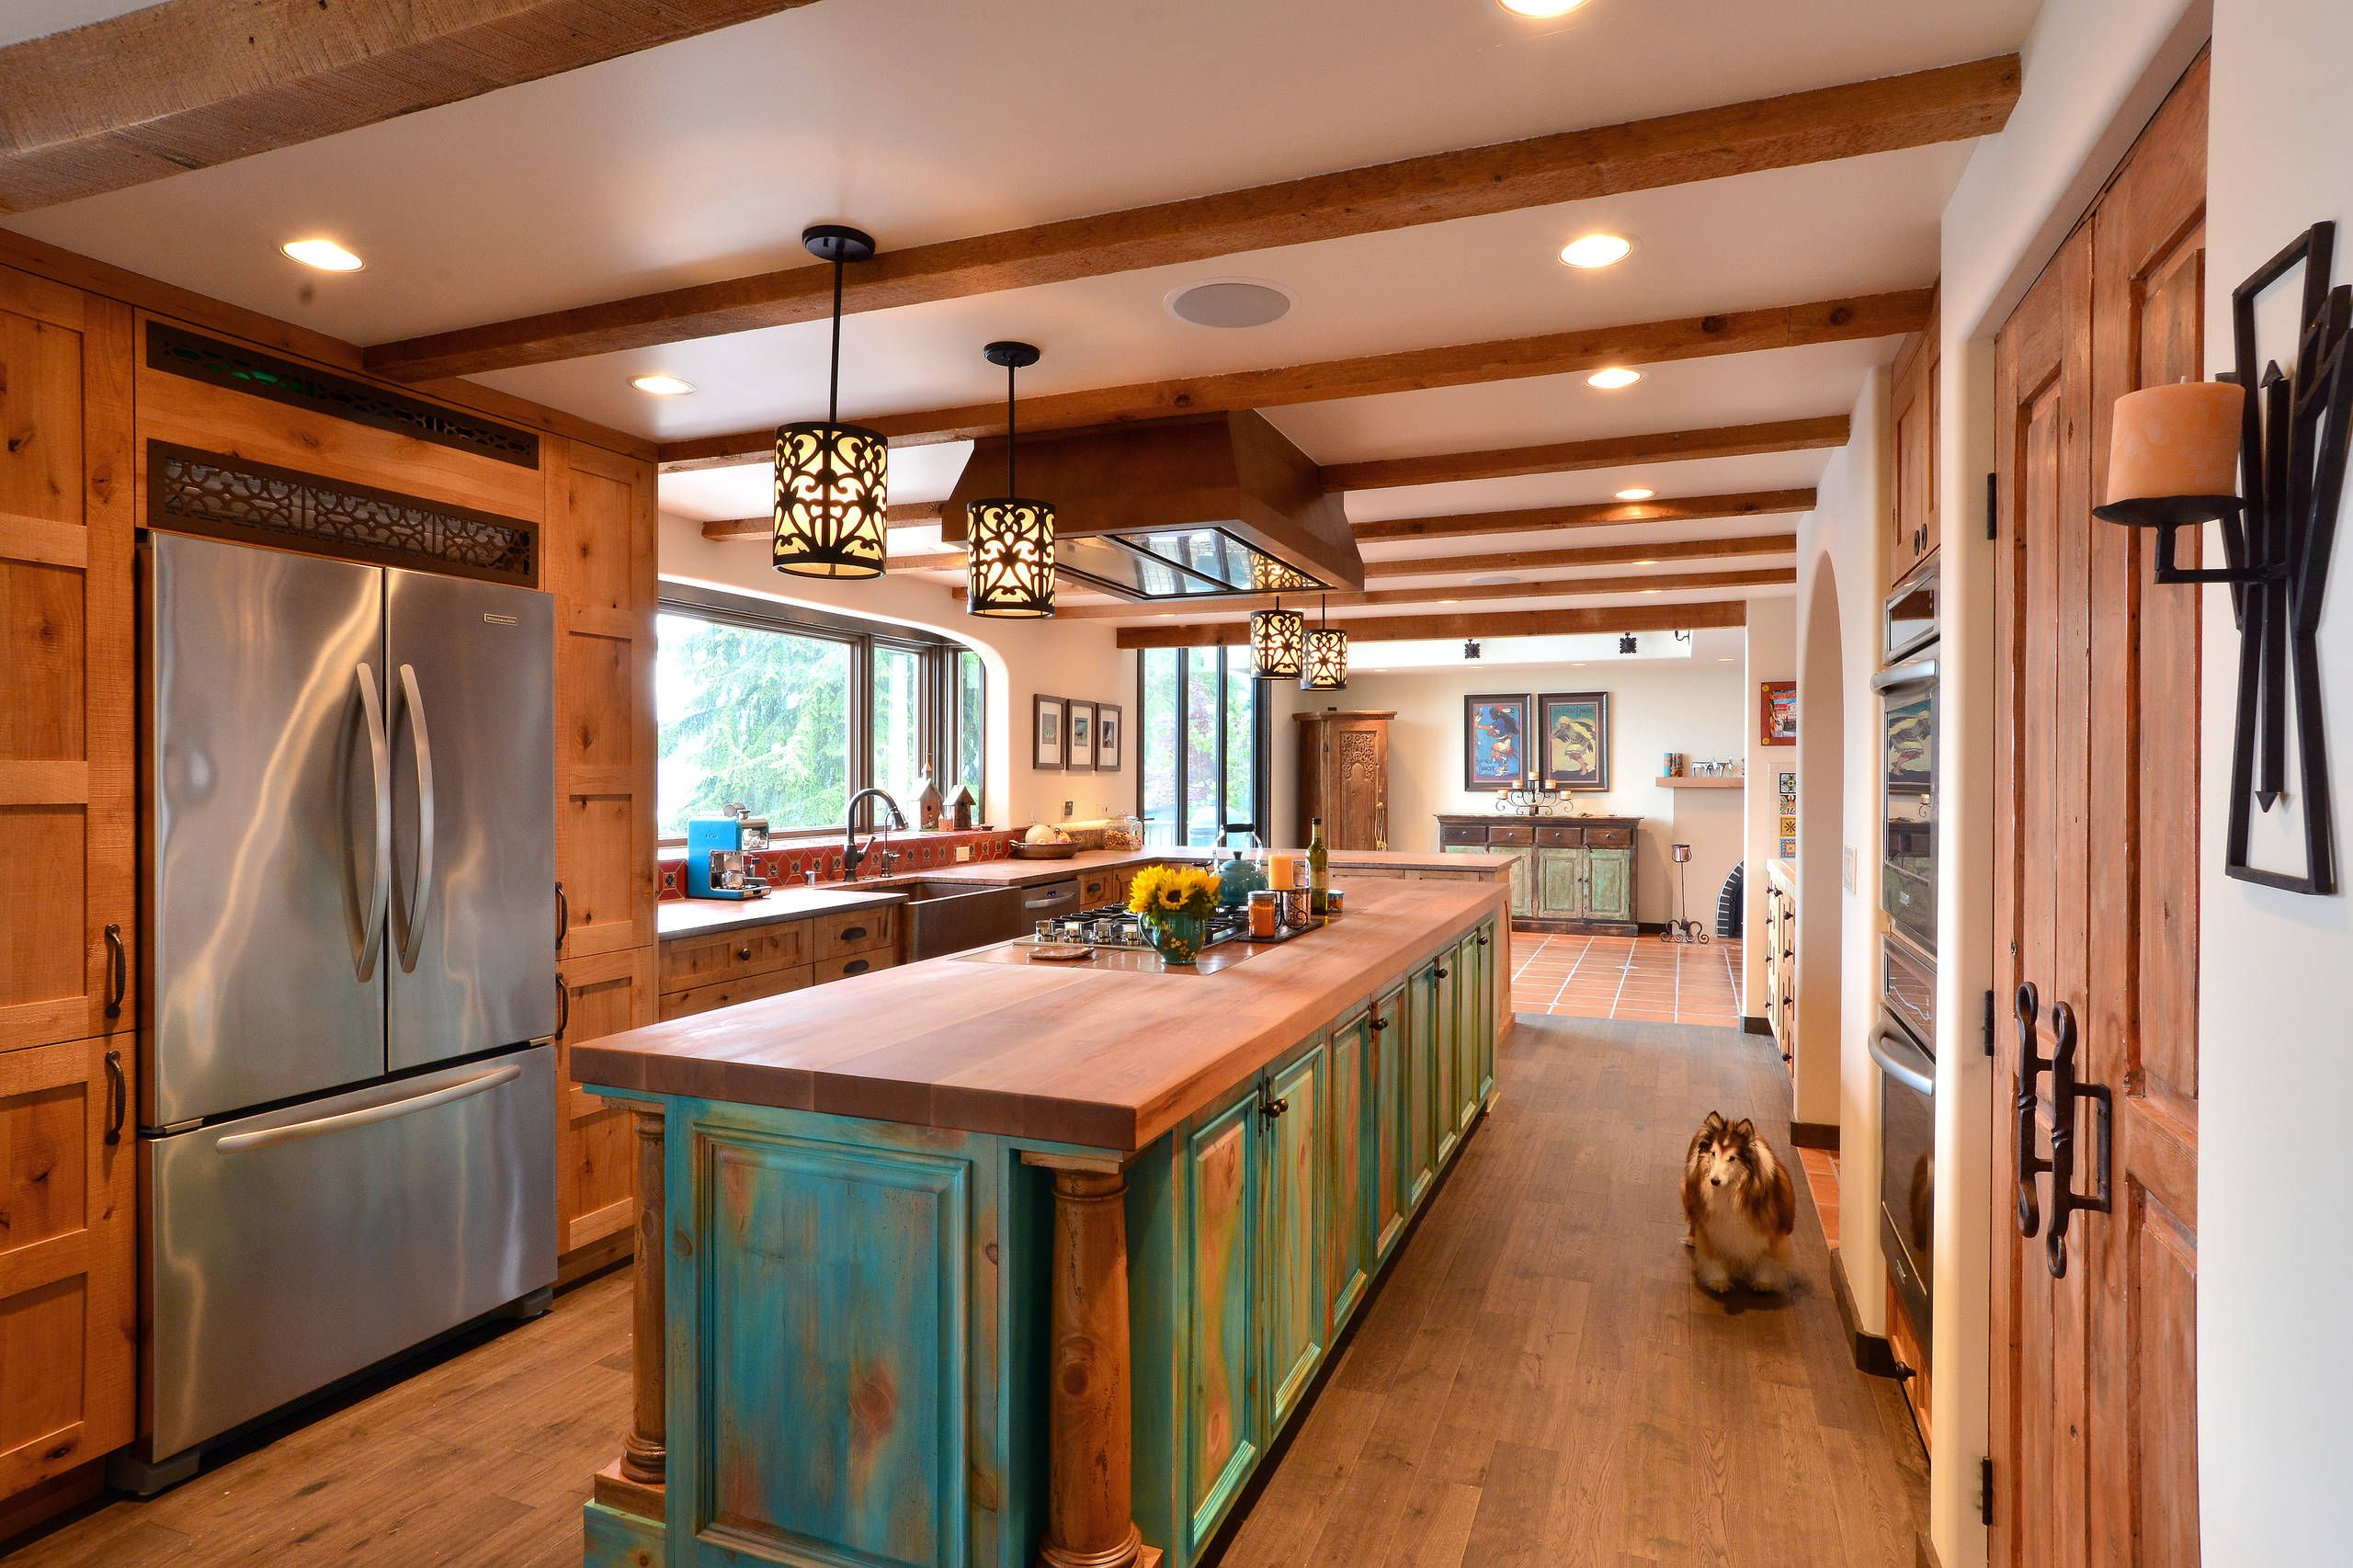 27 Southwest Kitchen Designs And Ideas Kitchen Remodel Small